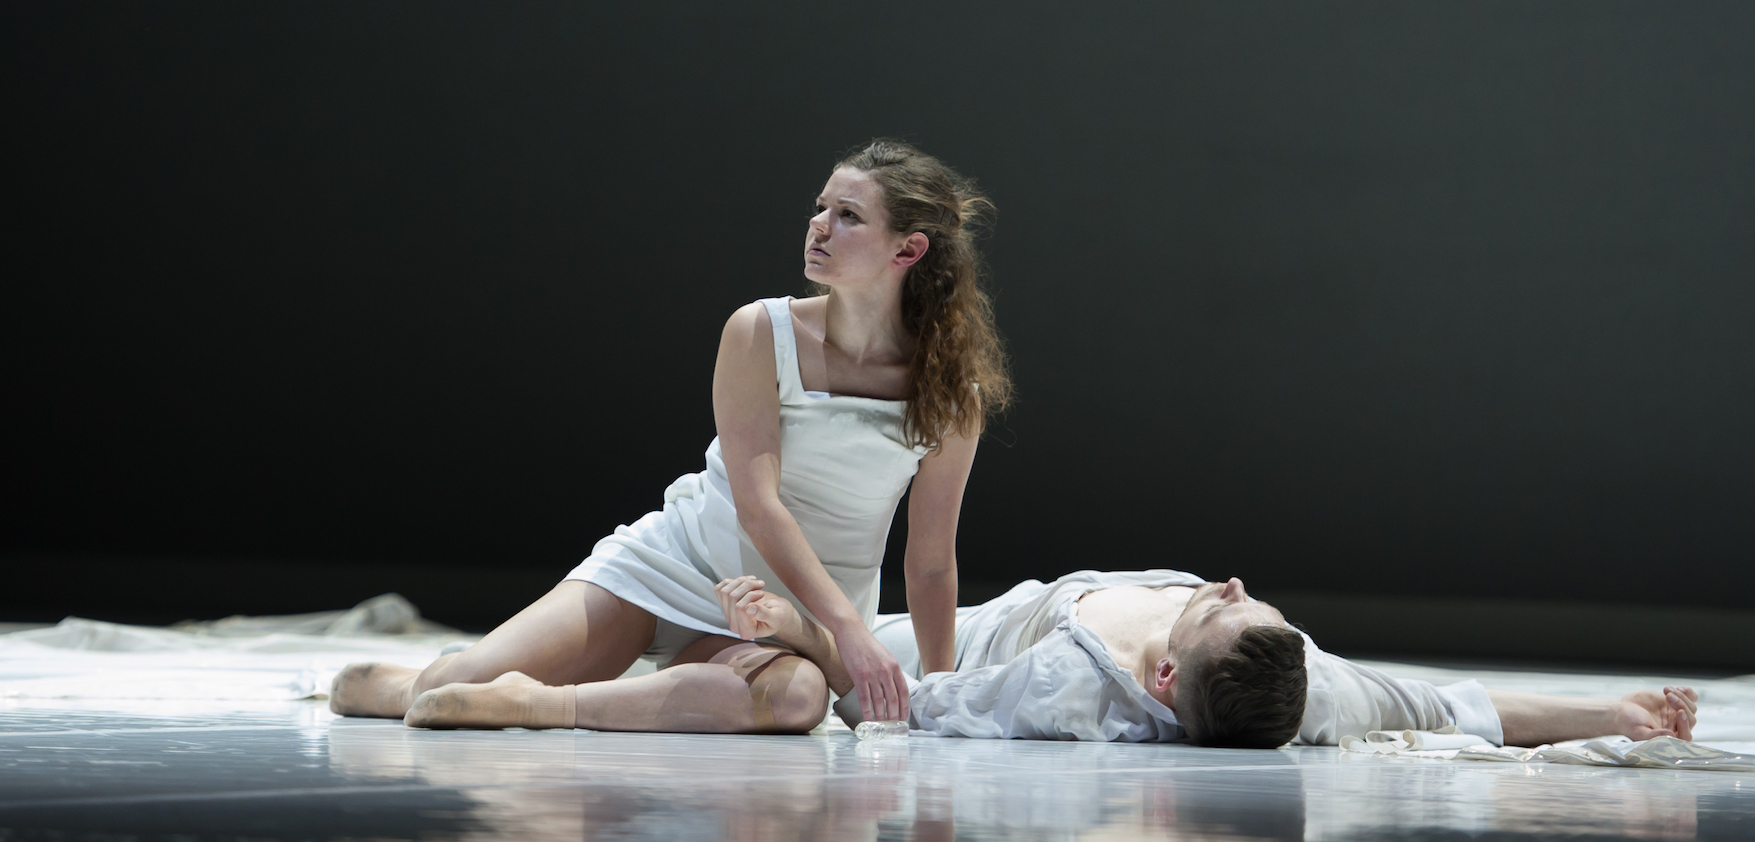 Romeo & Juliet by Ballet BC. Dancers: Emily Chessa & Brandon Alley. Photo: Cindi Wicklund